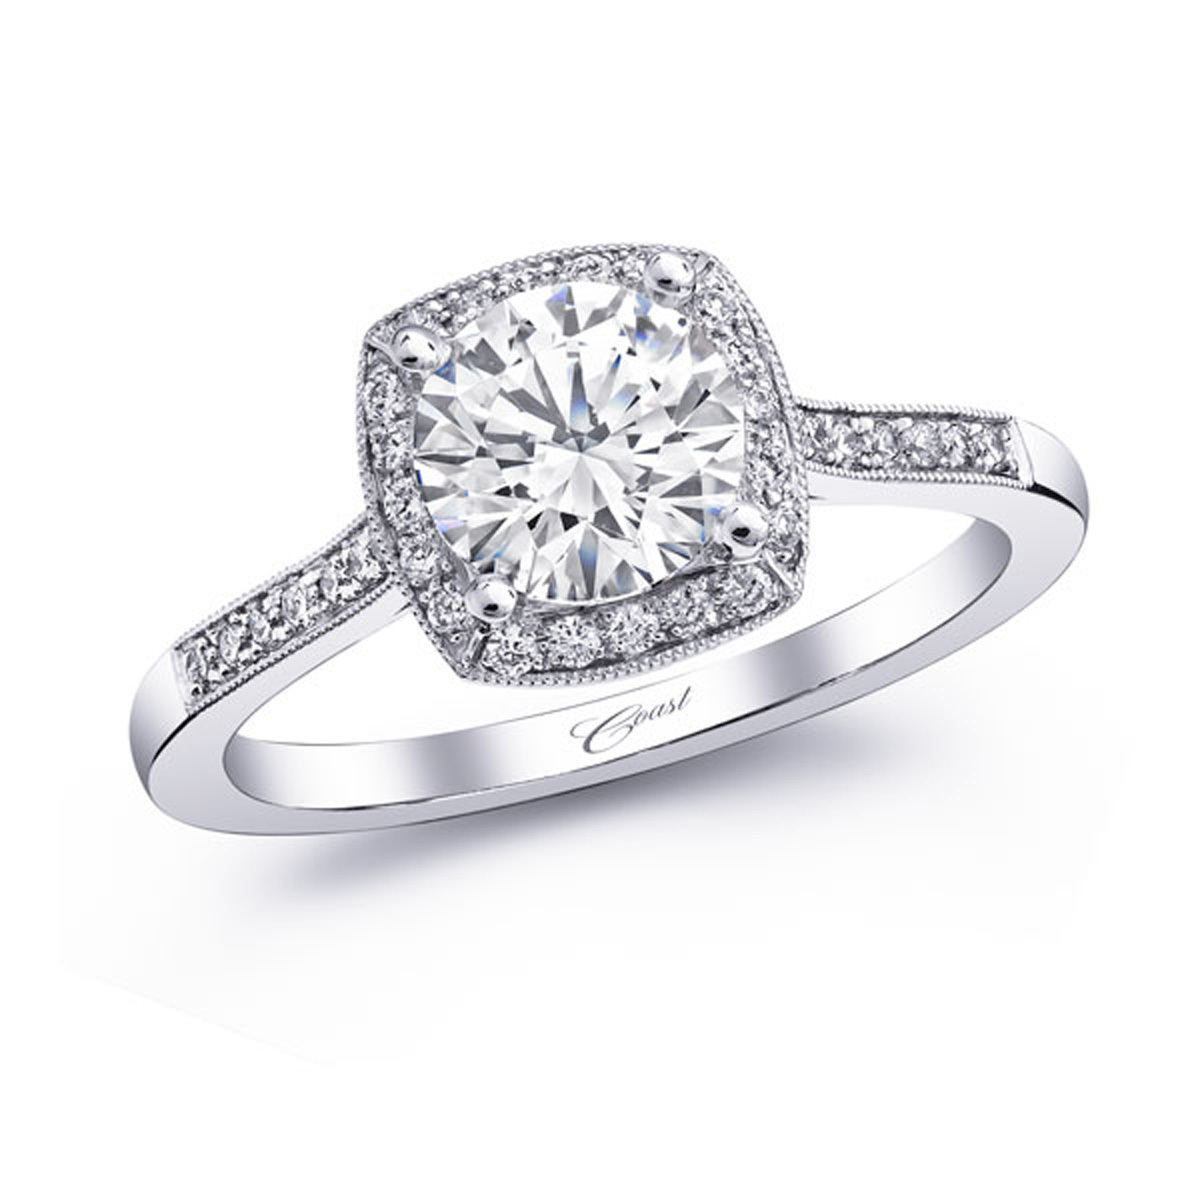 Romance Engagement Ring - Pave Diamond Halo